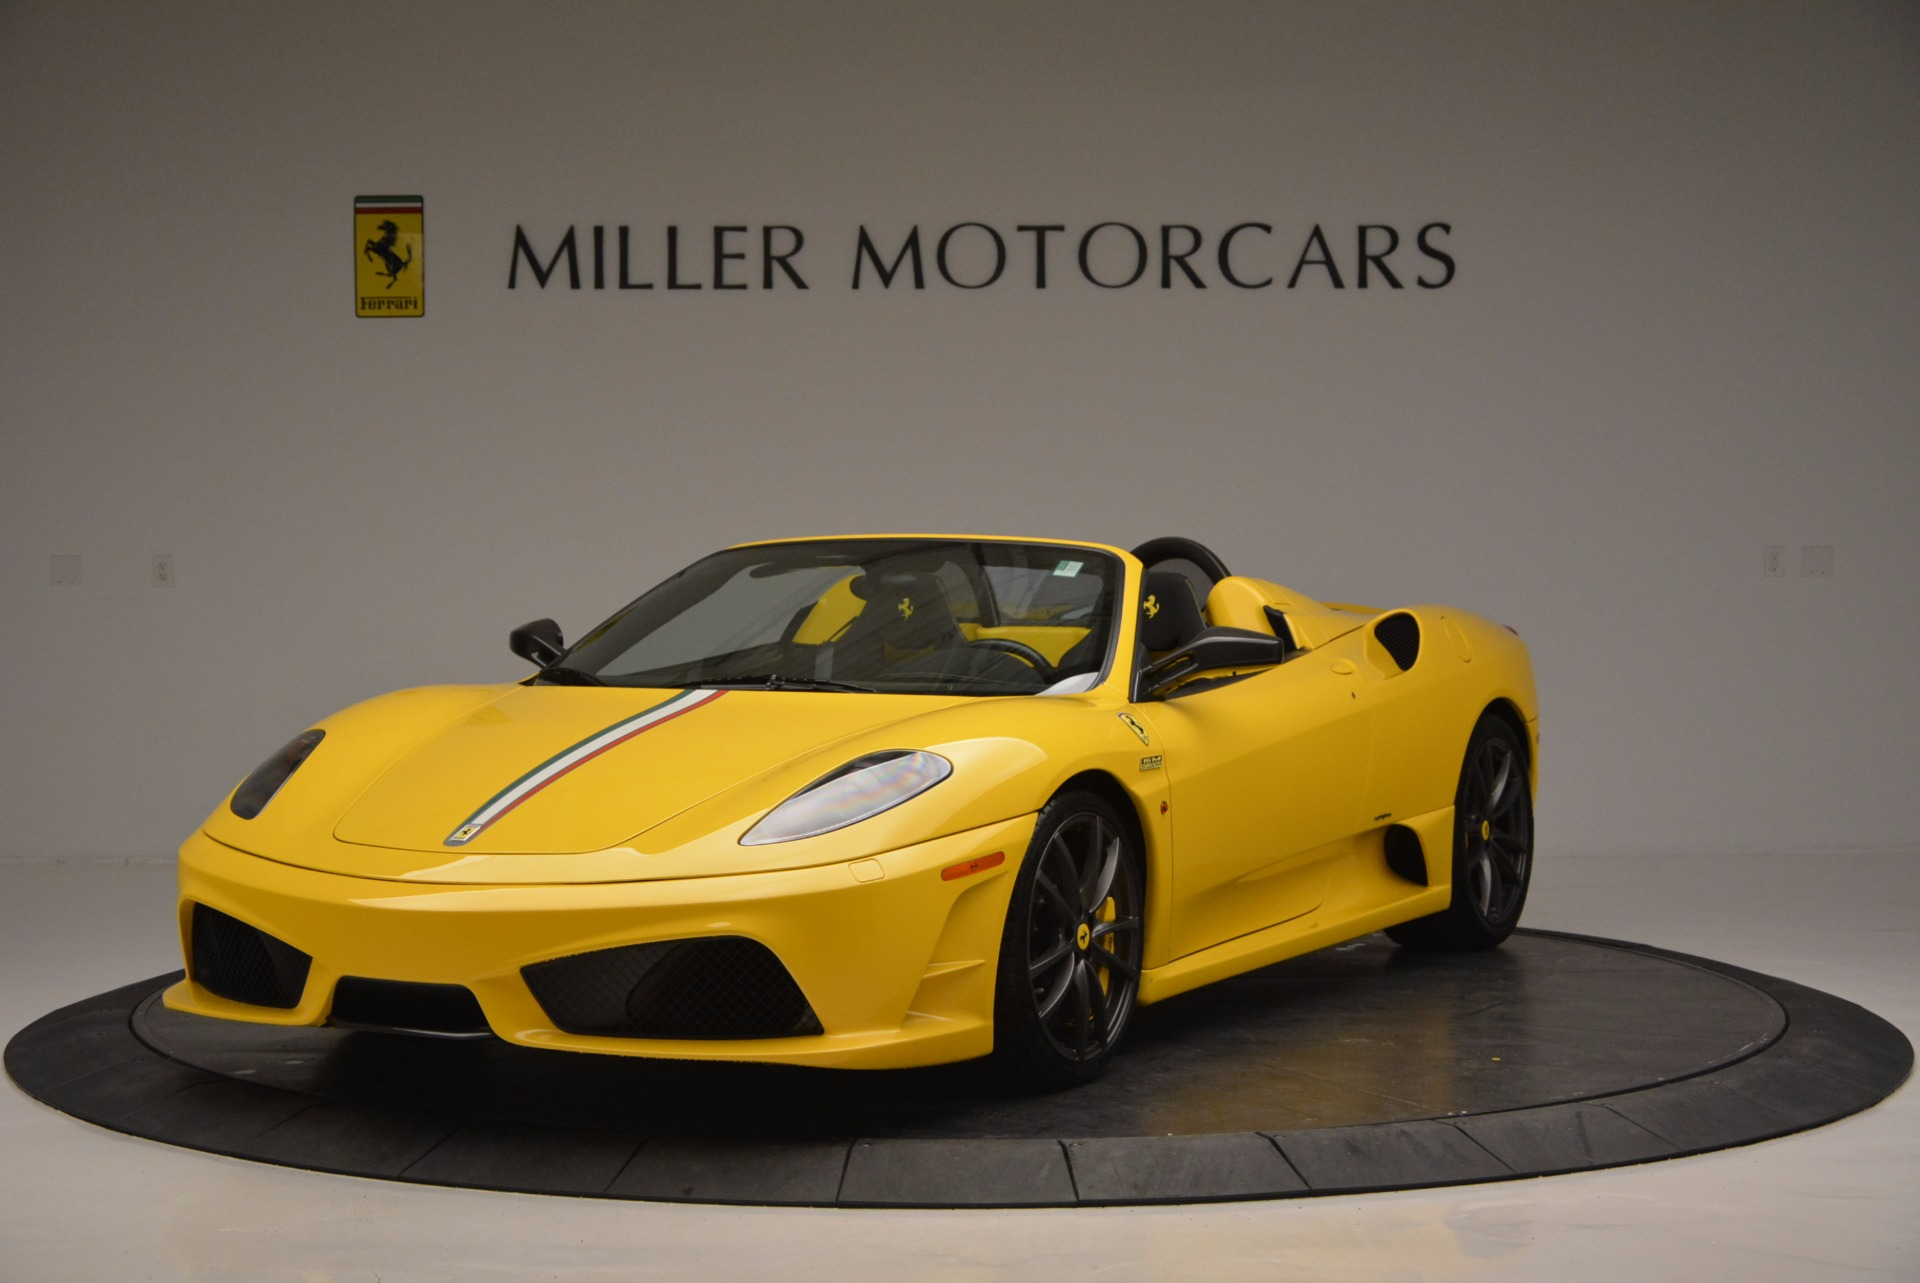 Used 2009 Ferrari F430 Scuderia 16M For Sale In Greenwich, CT